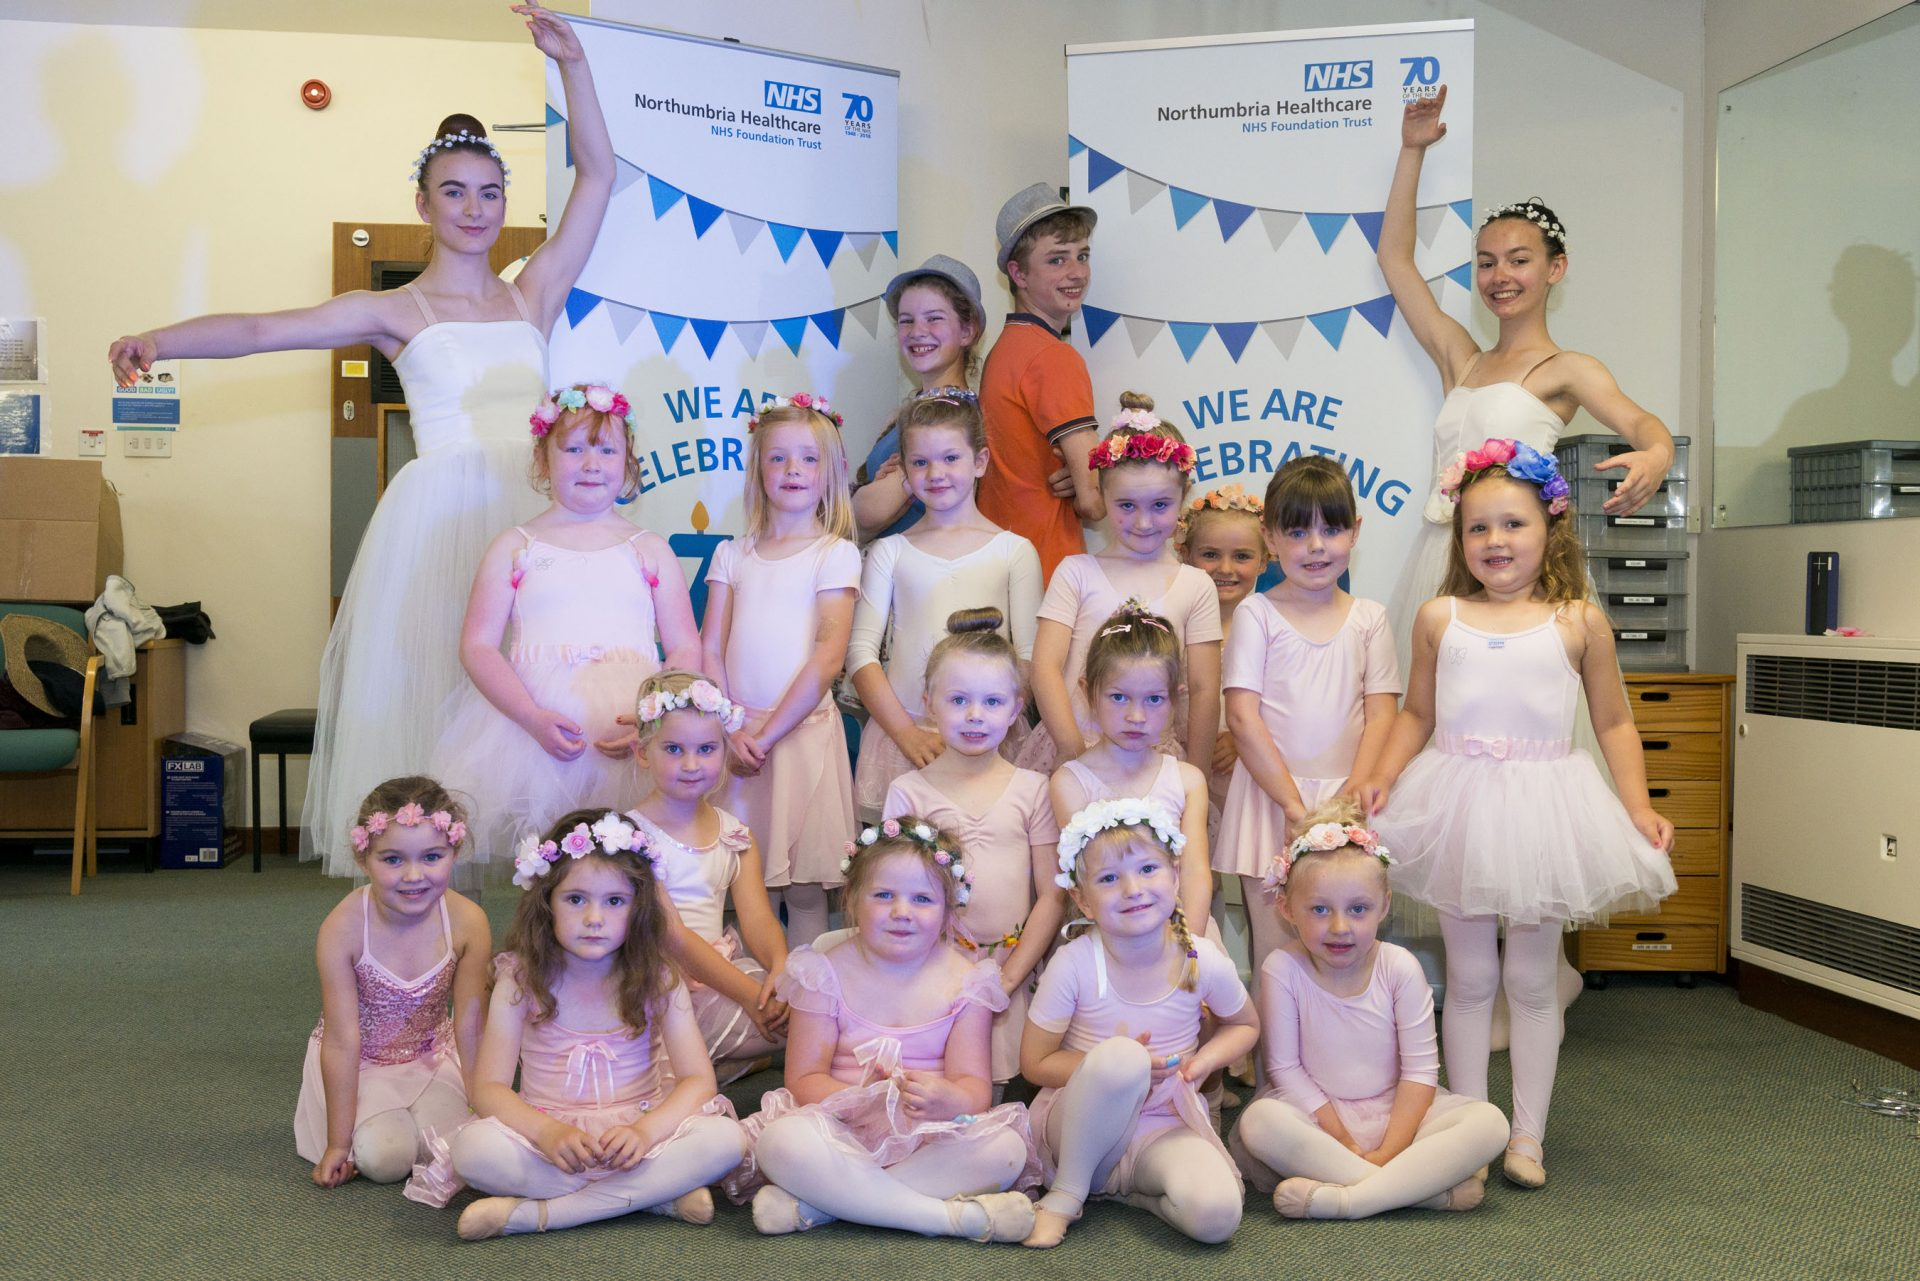 The Jane Keenan School of Dance perform at the tea dance at Berwick Infirmary to celebrate the 70th birthday of the NHS, July 2018